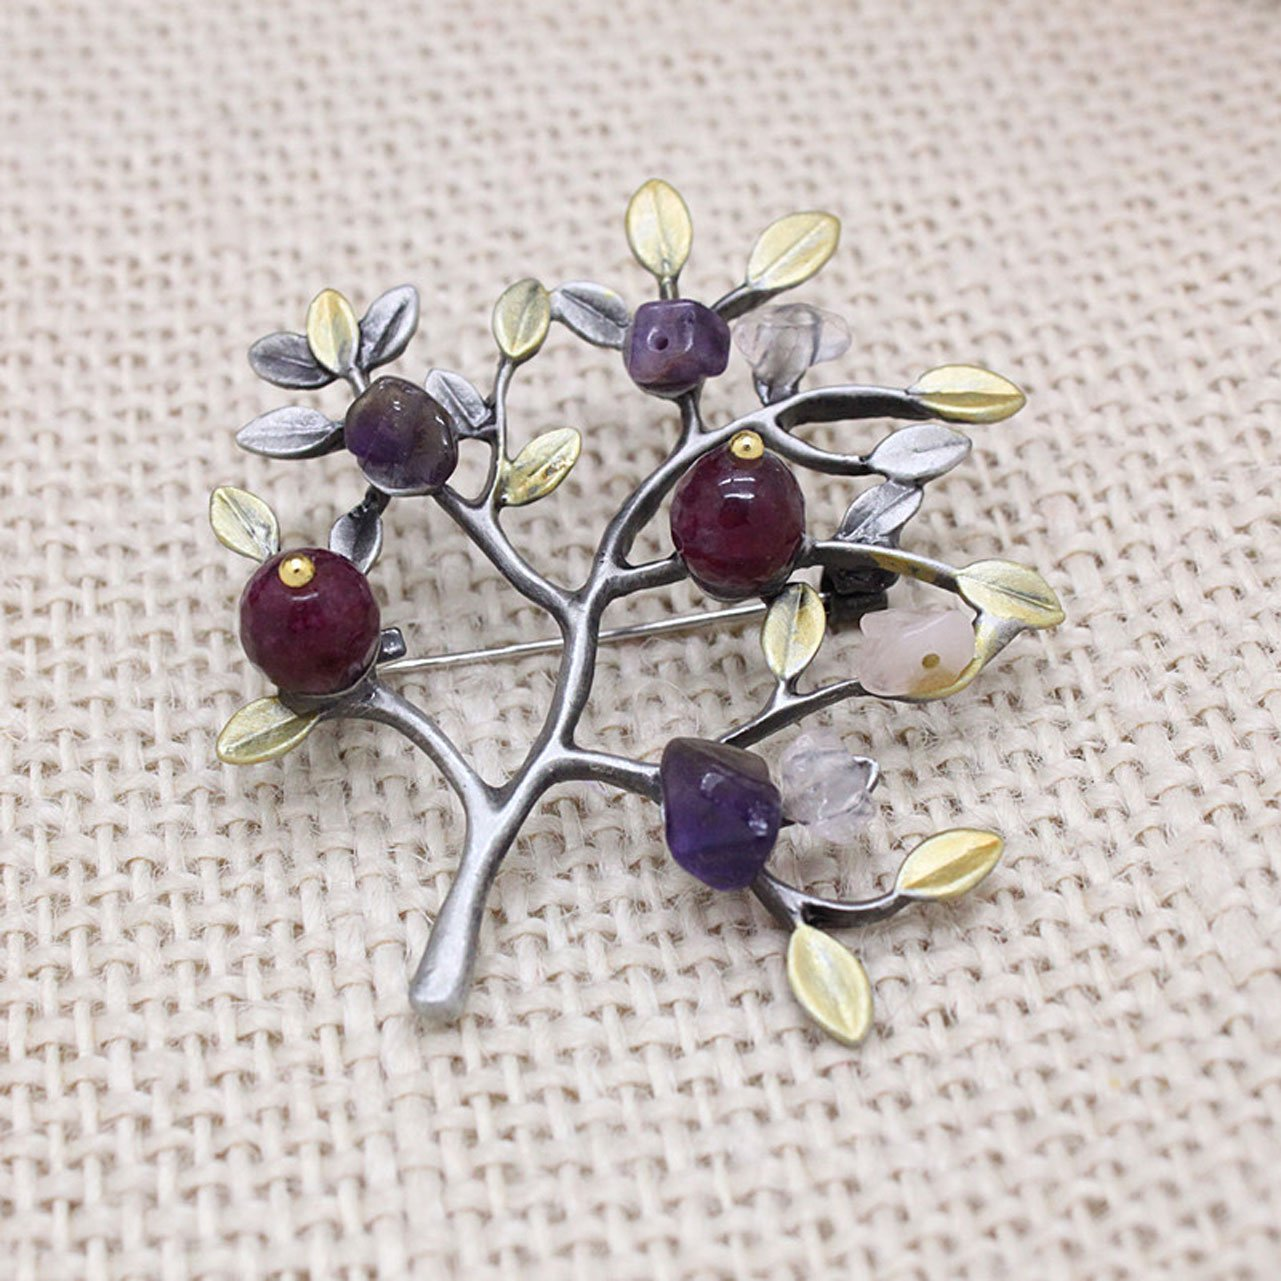 Vintage Natural Stone Brooch Pins Pendant Retro Enamel Leaves Tree Imitation Pearl Pins Brooches Jewelry for Women